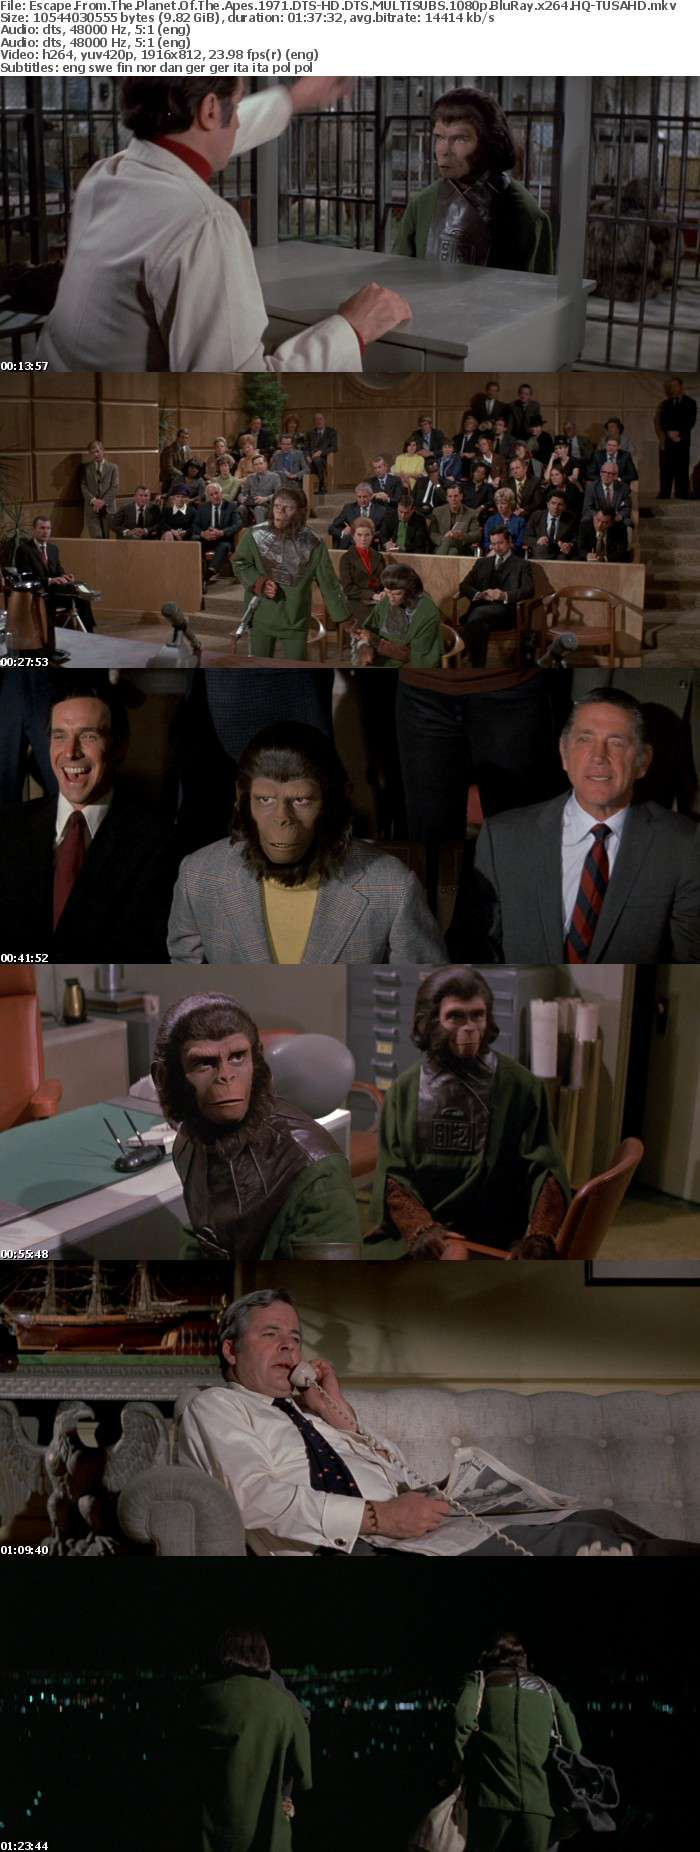 Escape From The Planet Of The Apes 1971 DTS-HD DTS MULTISUBS 1080p BluRay x264 HQ-TUSAHD